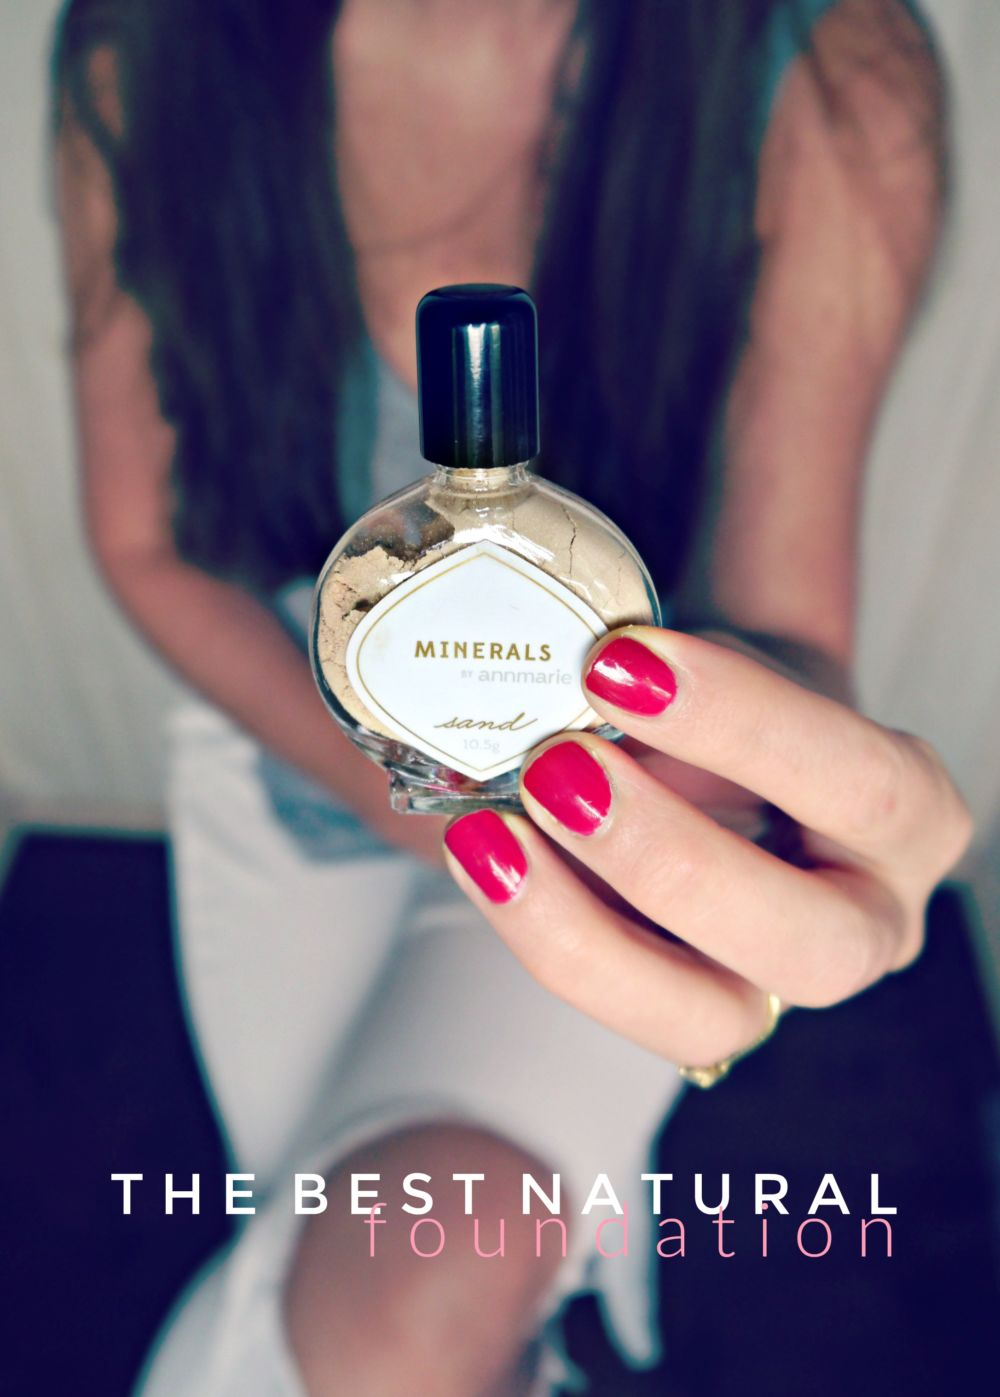 Annmarie Minerals, My Favorite Natural Foundation